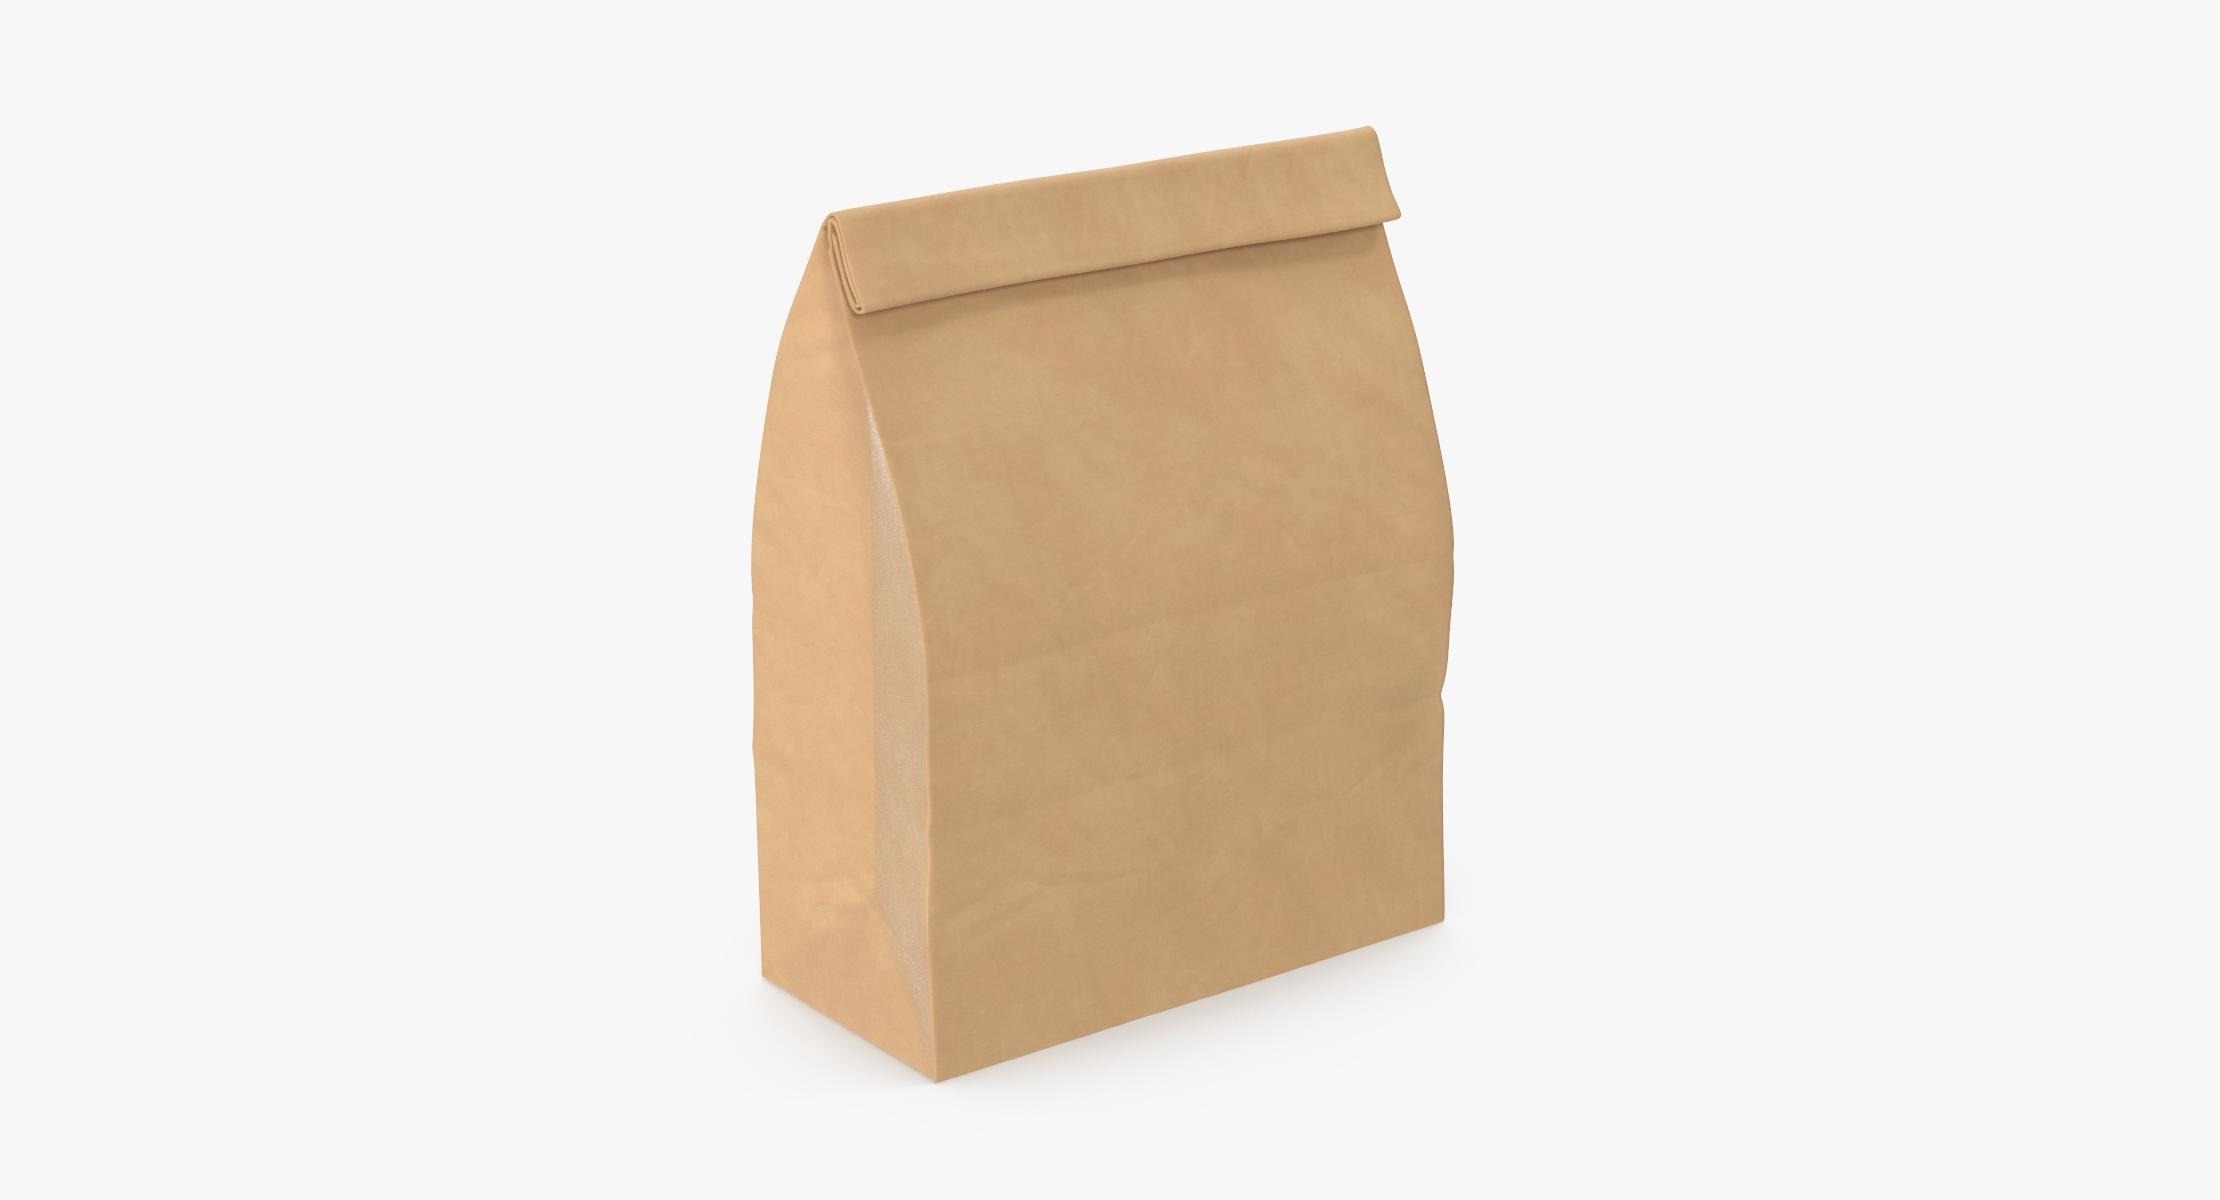 Grocery Bag No Handle Mockup Large Closed - reel 1